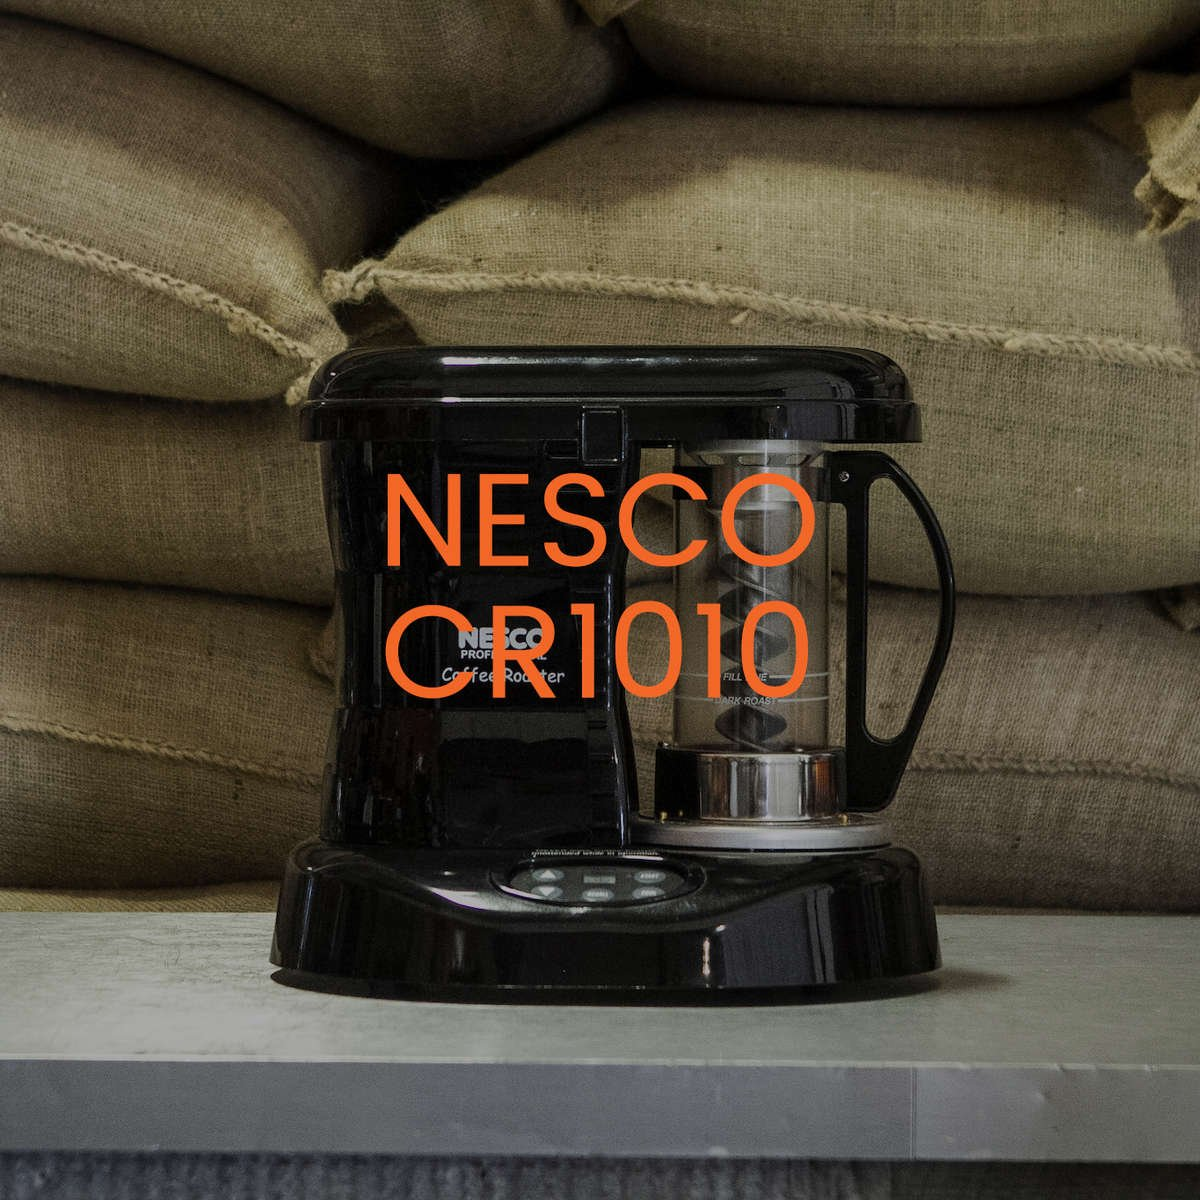 Nesco CR1010